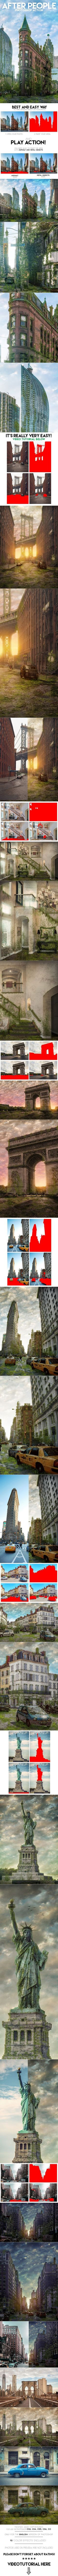 After People Photoshop Action - Photo Effects Actions